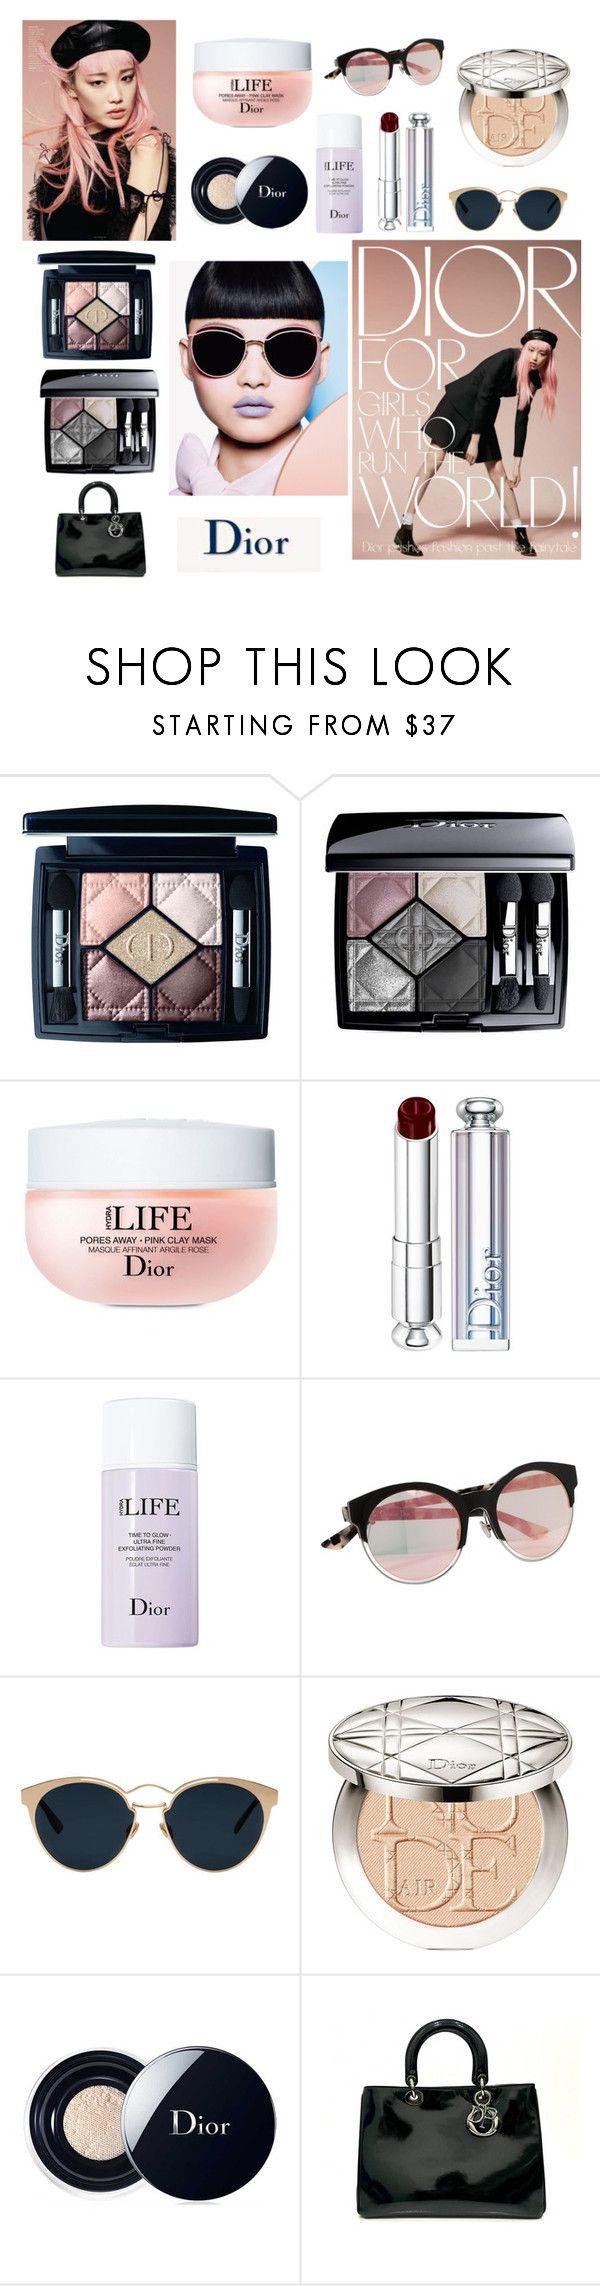 """Makeup Dior"" by snowflakes214247 ❤ liked on Polyvore featuring beauty and Christian Dior"